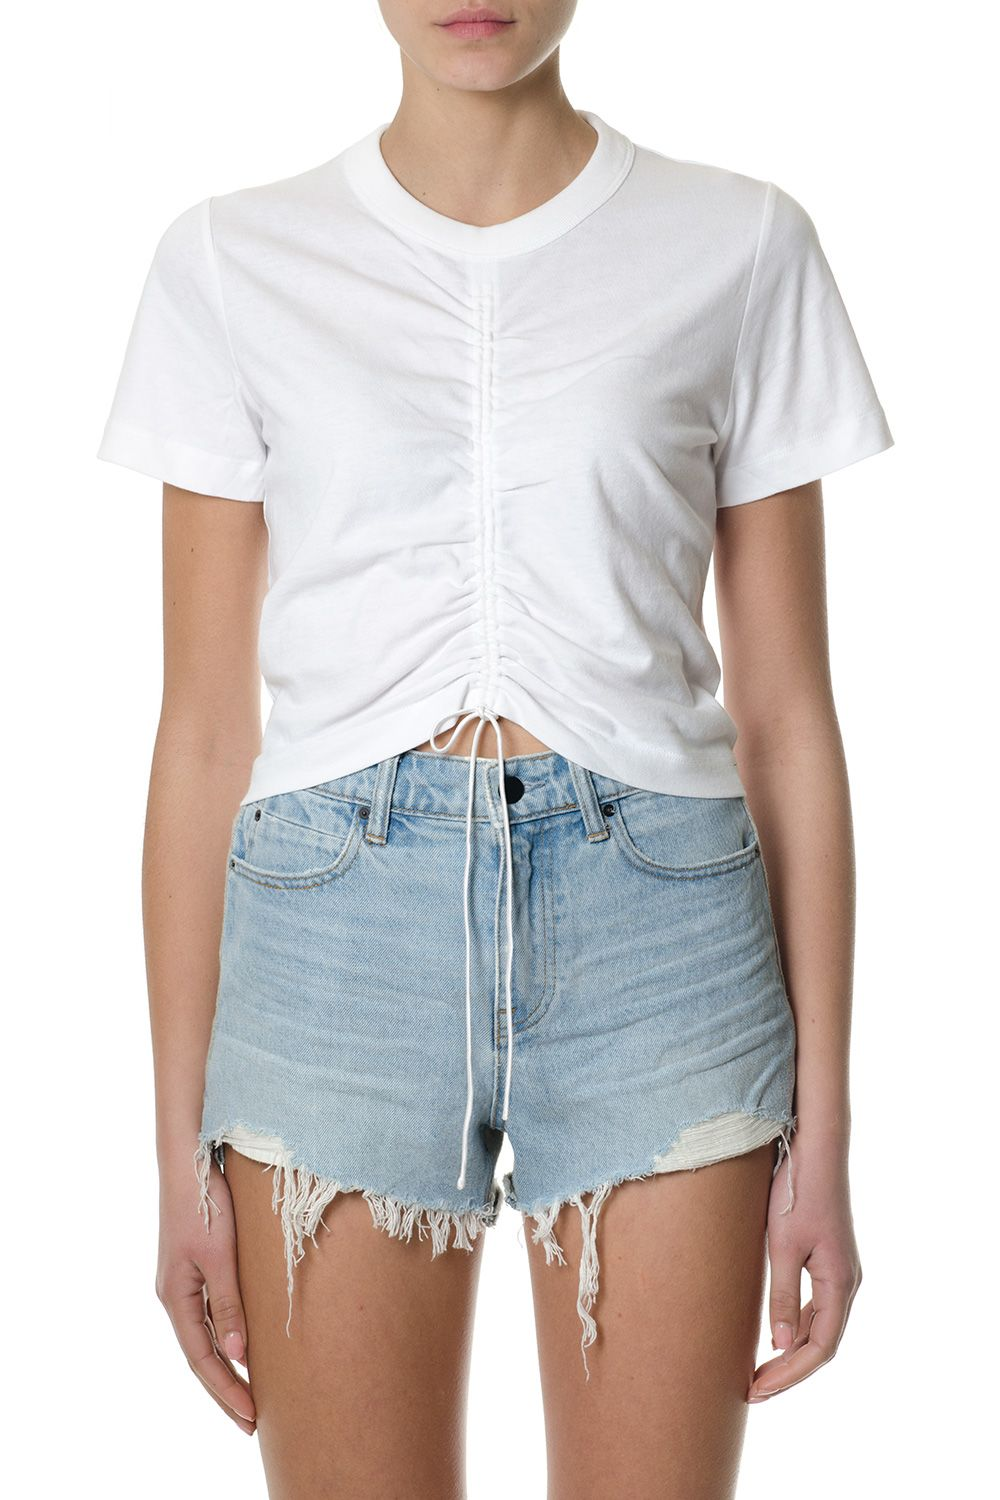 Alexander Wang White Front Gathered Cotton T-shirt